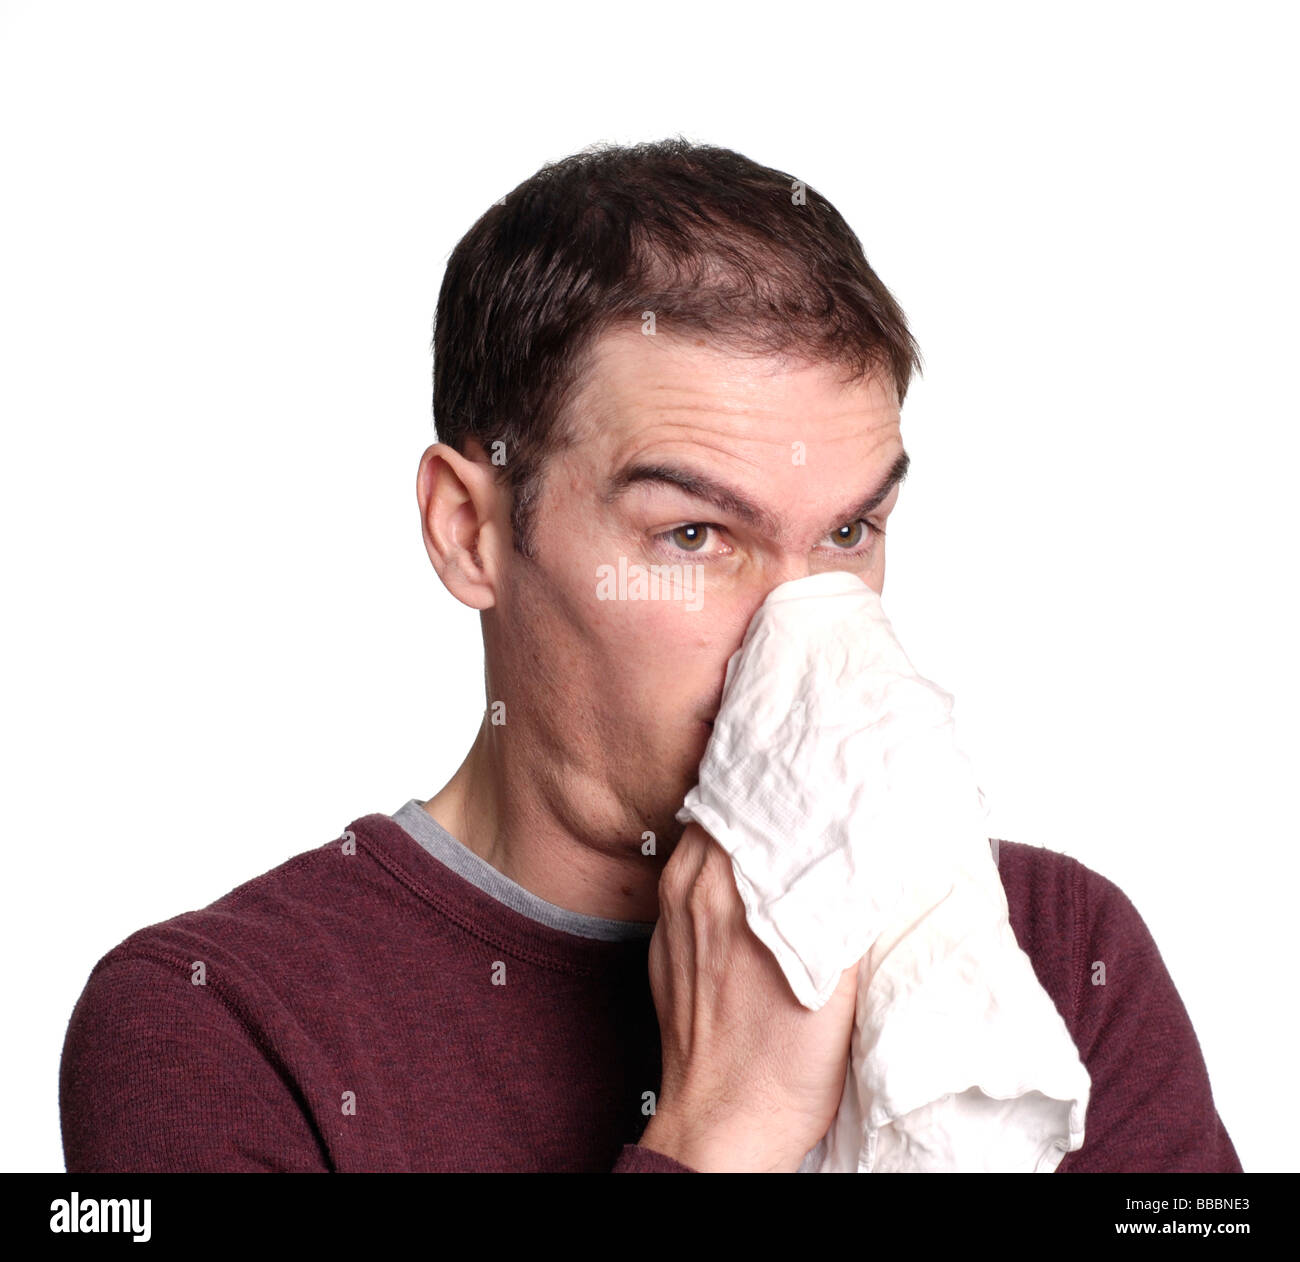 Man blowing his nose into a handkerchief - Stock Image